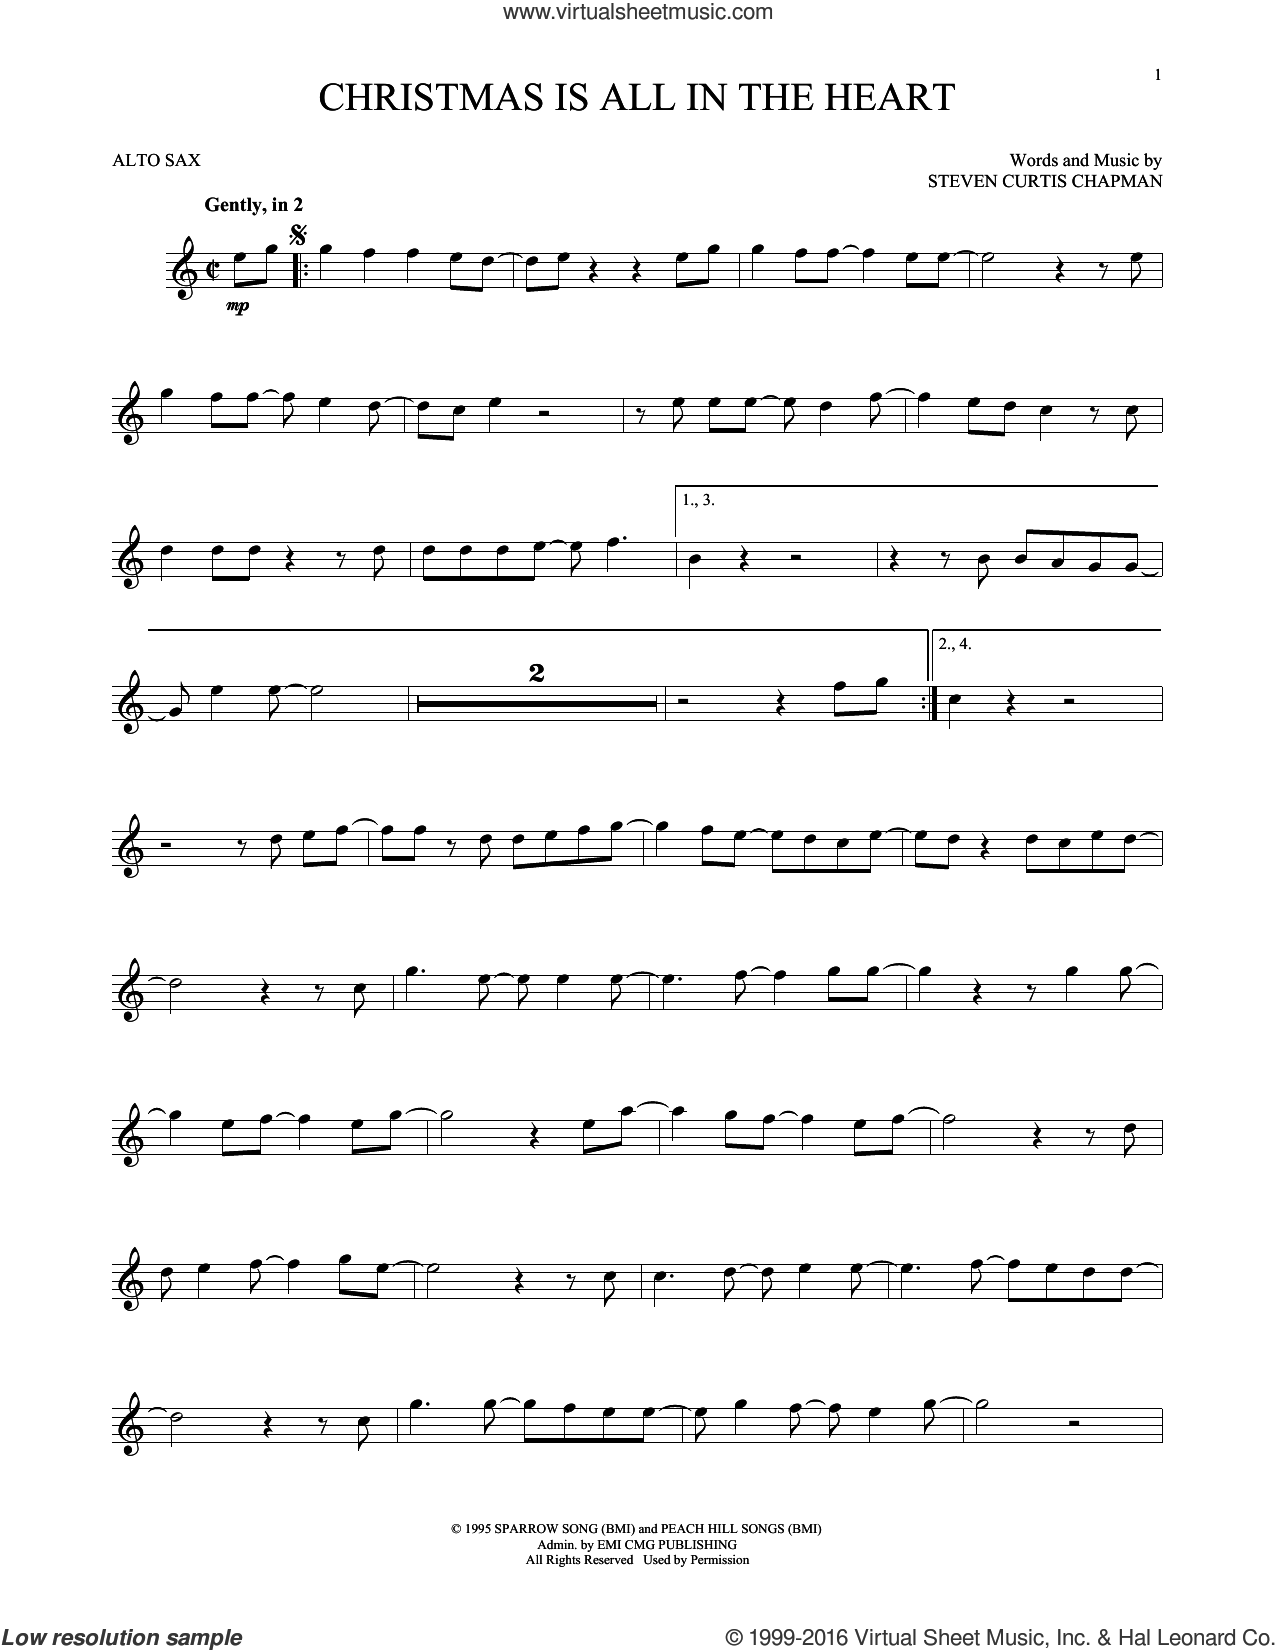 Christmas Is All In The Heart sheet music for alto saxophone solo by Steven Curtis Chapman, intermediate skill level